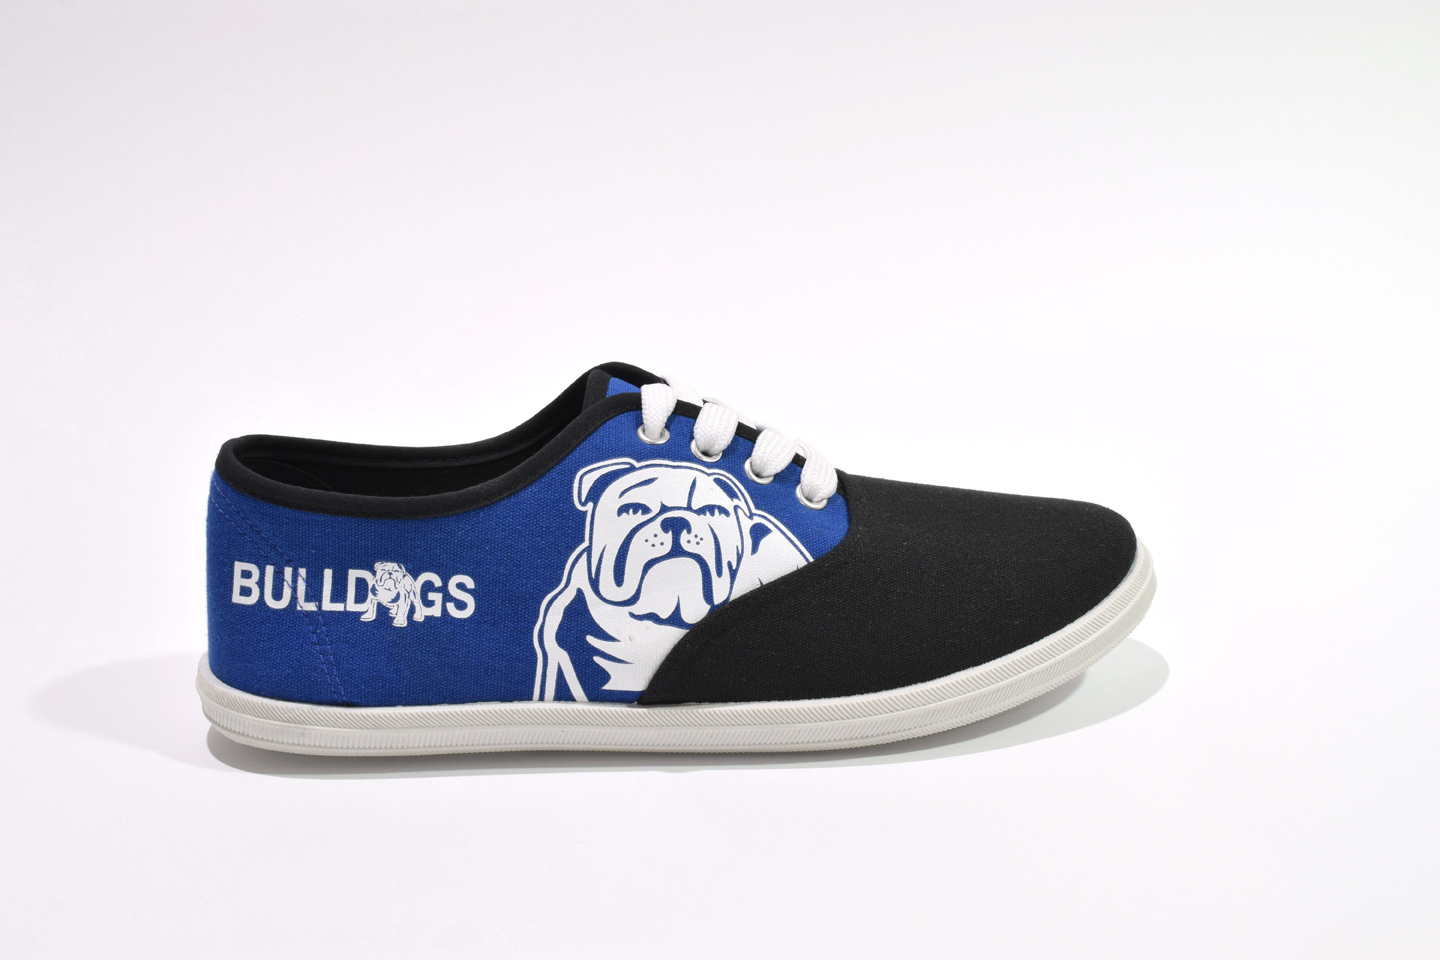 Bulldogs 6 copy